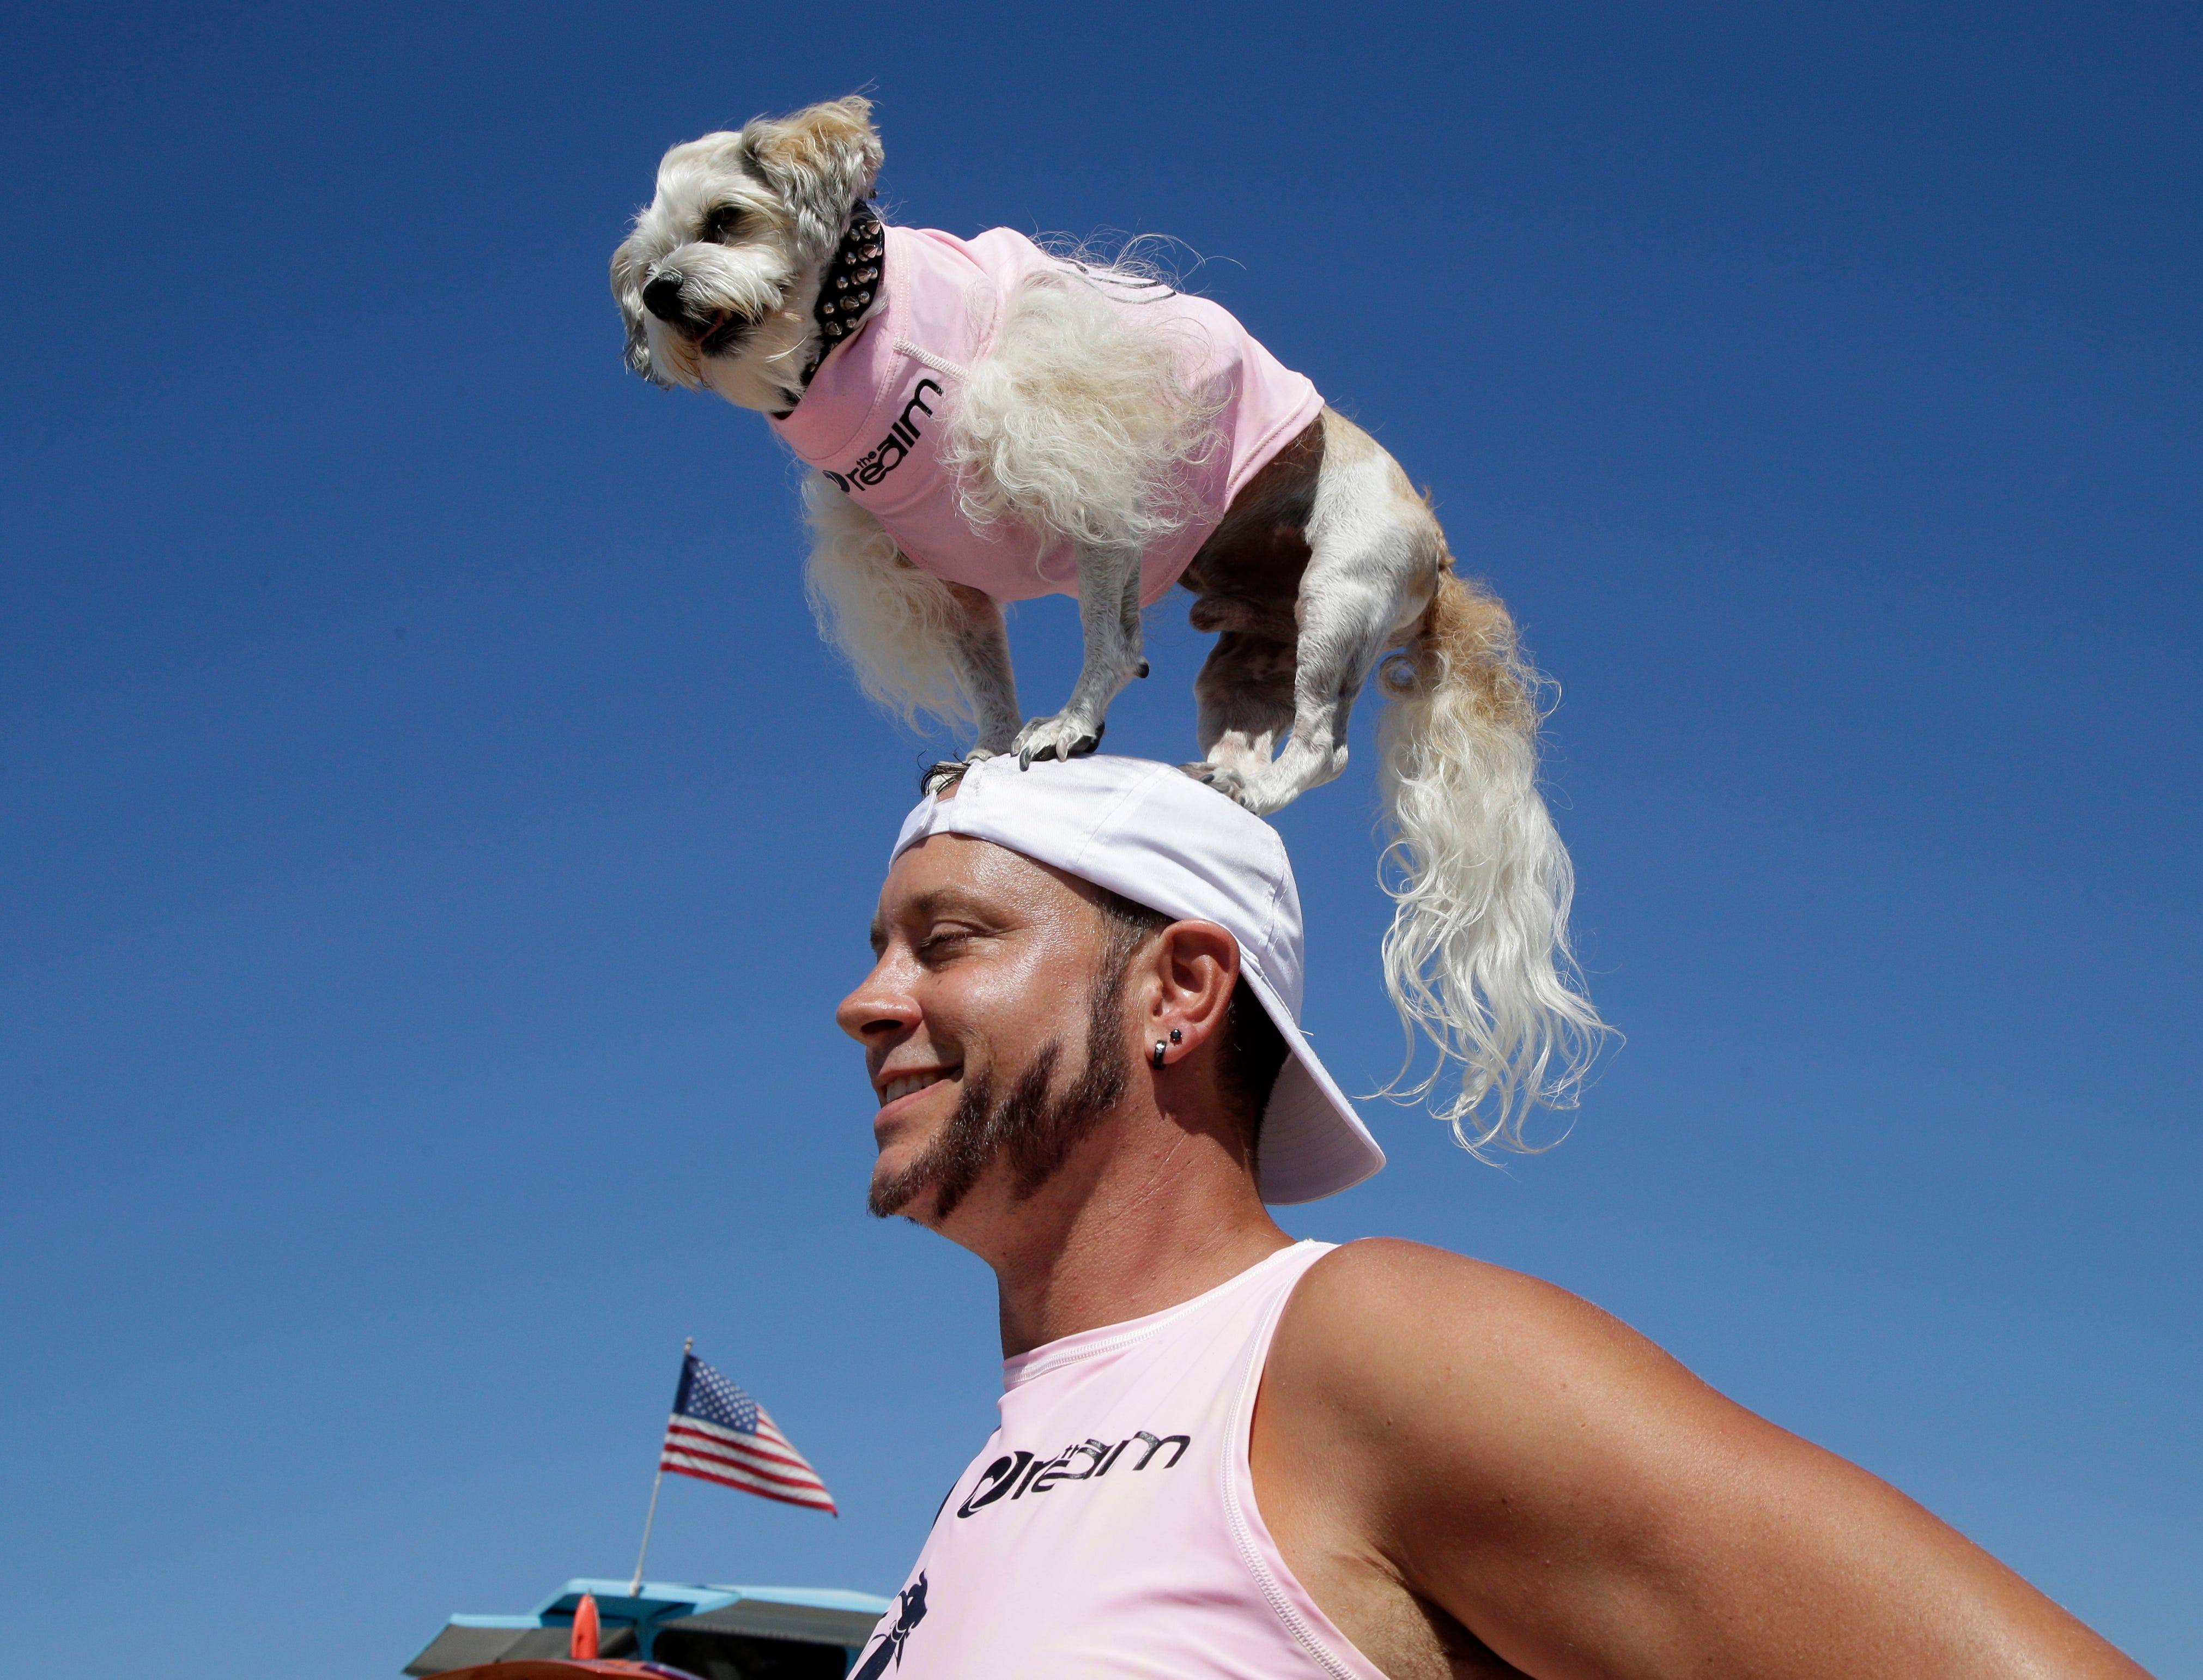 Prince Dudeman stands on the head of his owner, Ryan Thor, prior to competing. A previous version of this caption misspelled the owner's name.